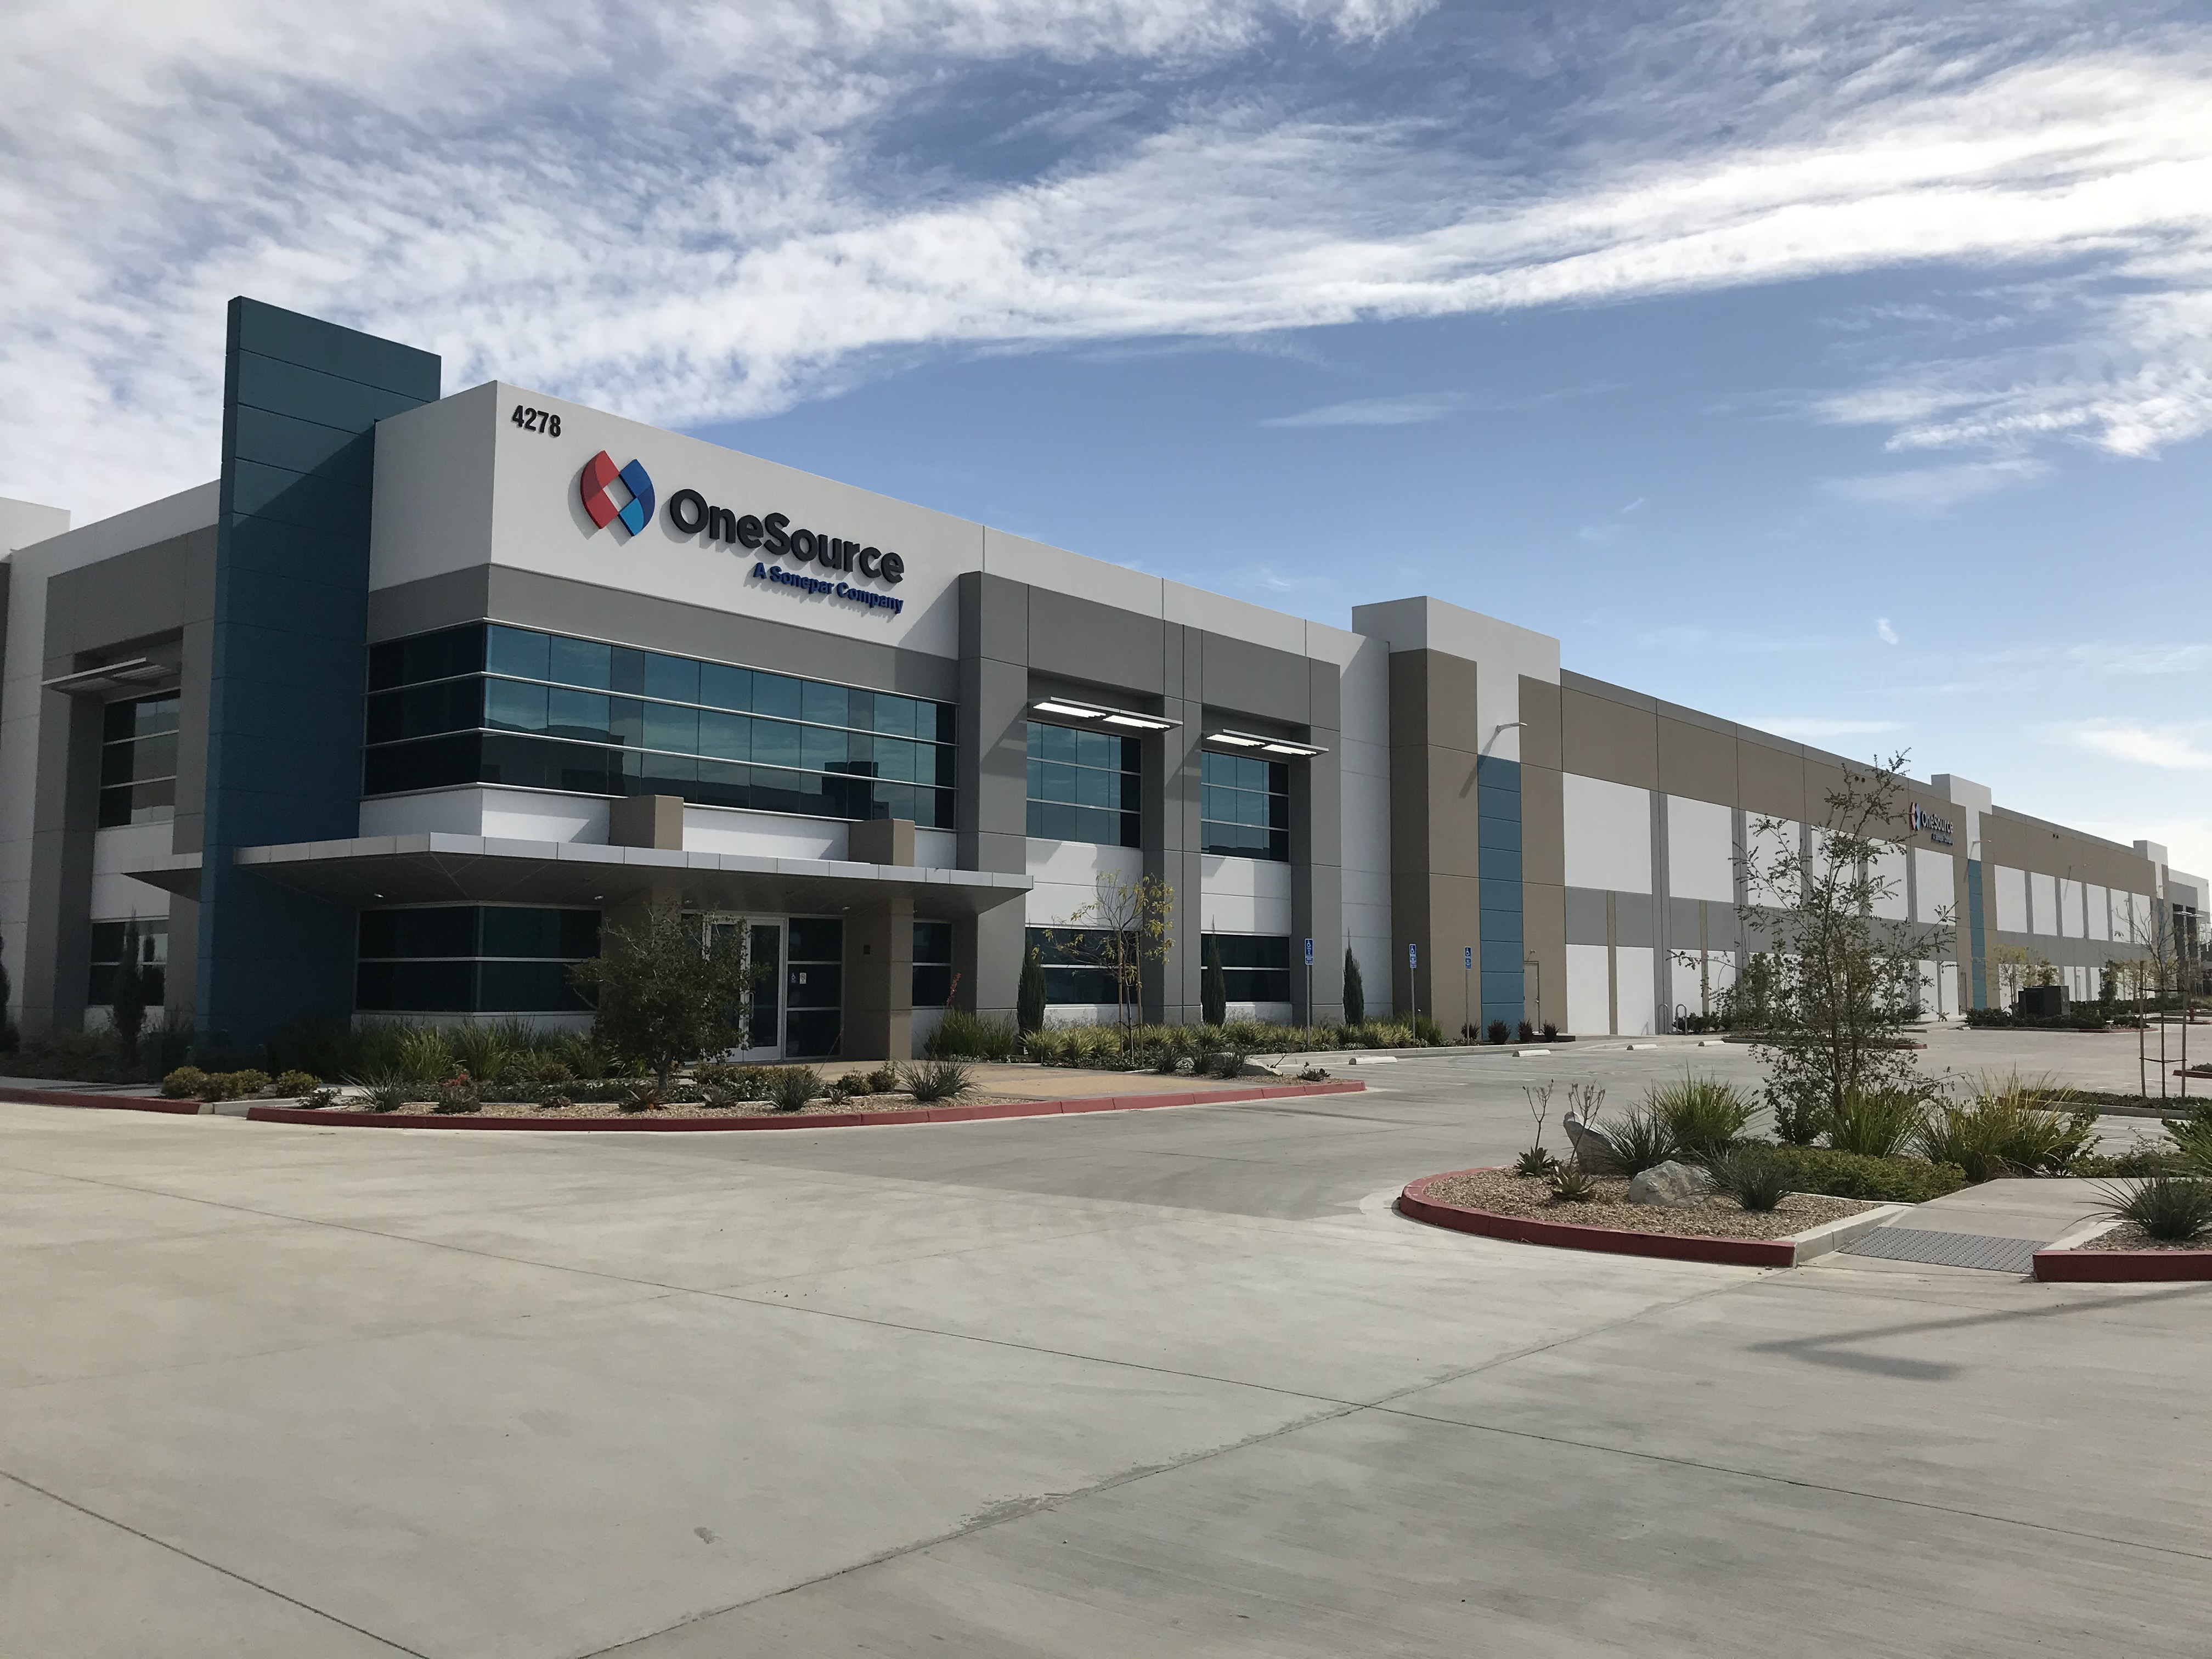 OneSource Moves Central Distribution Center and Offices to Fullerton, CA